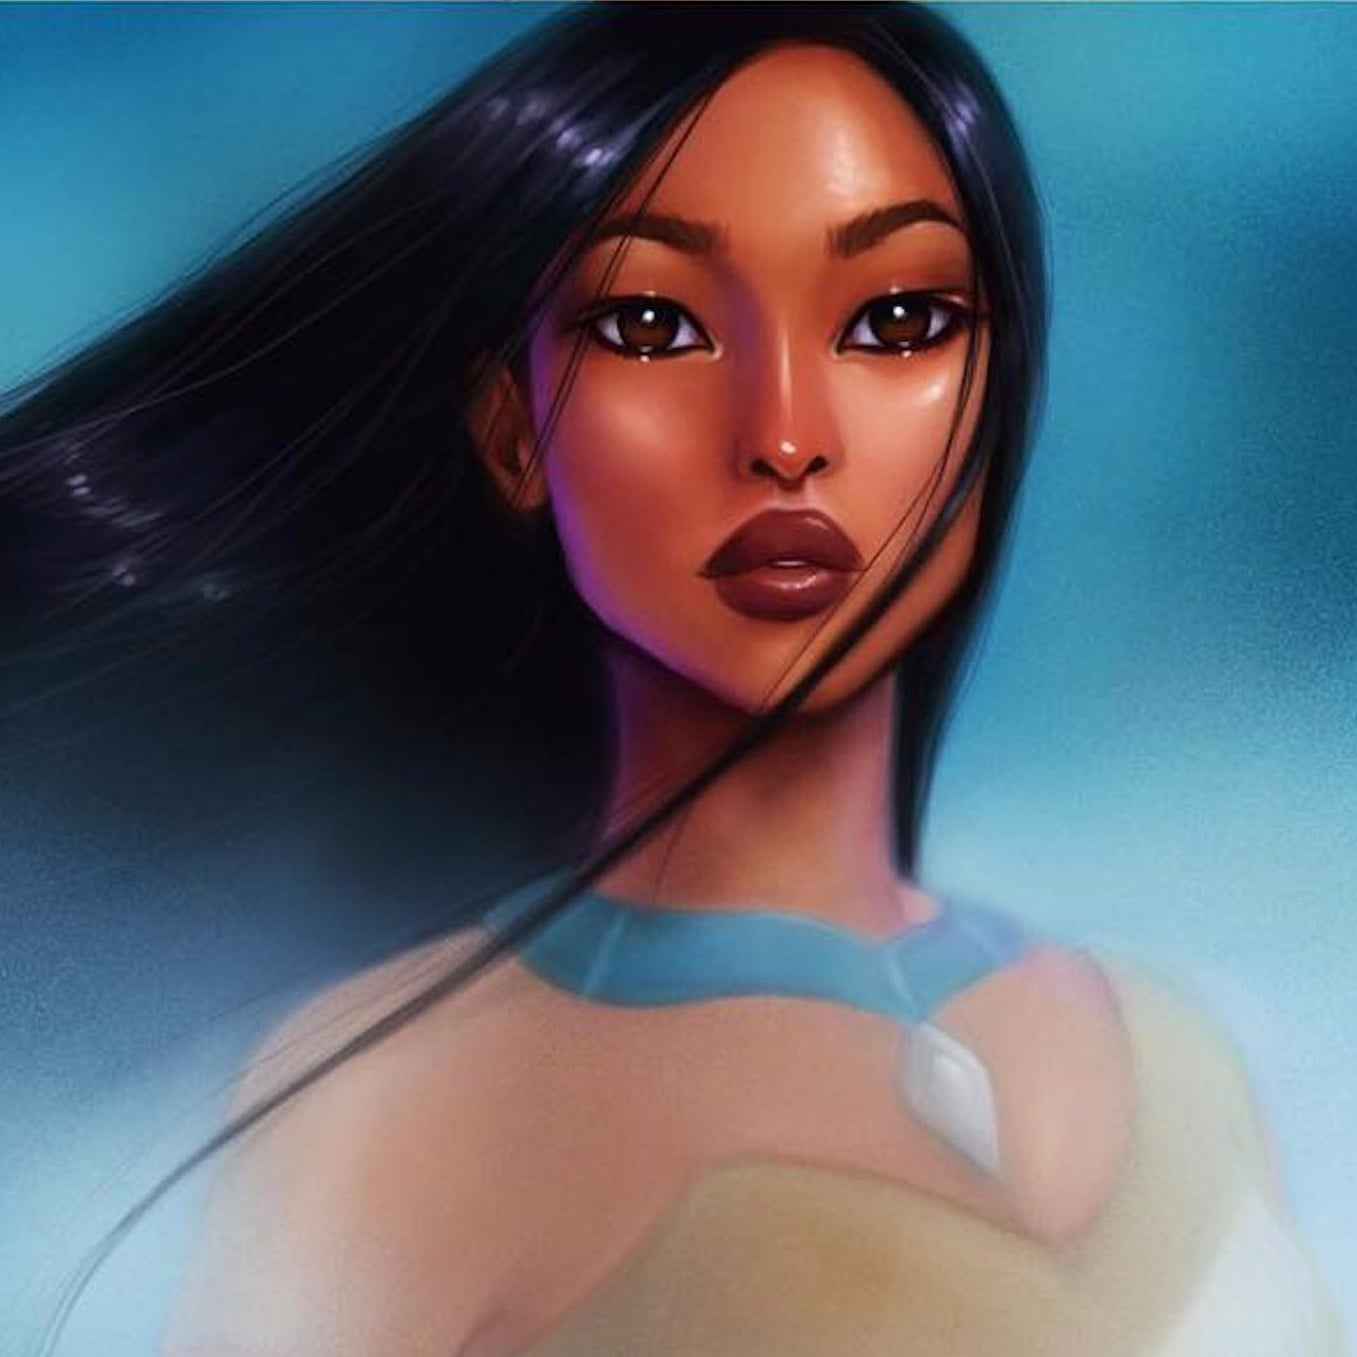 Realistic Disney Princess Illustrations Popsugar Love Sex